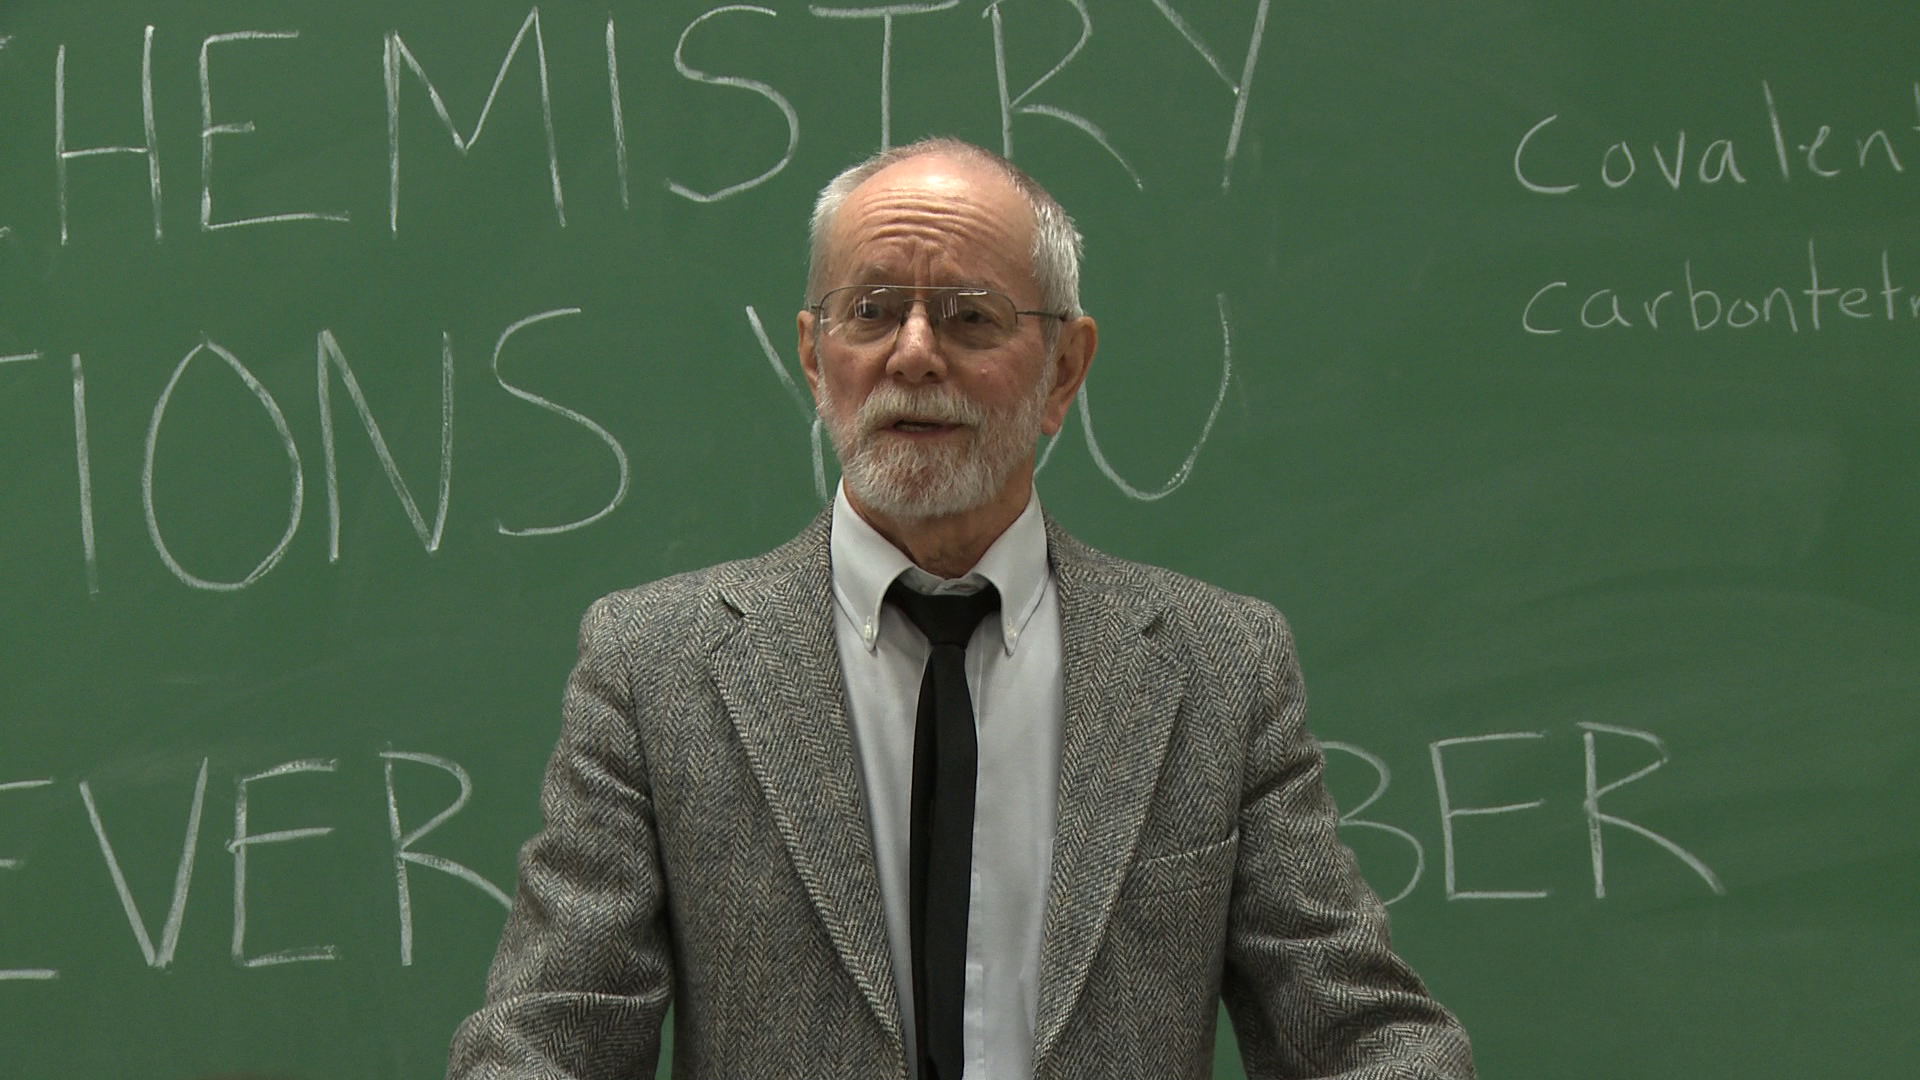 A professor standing in front of a chalkboard